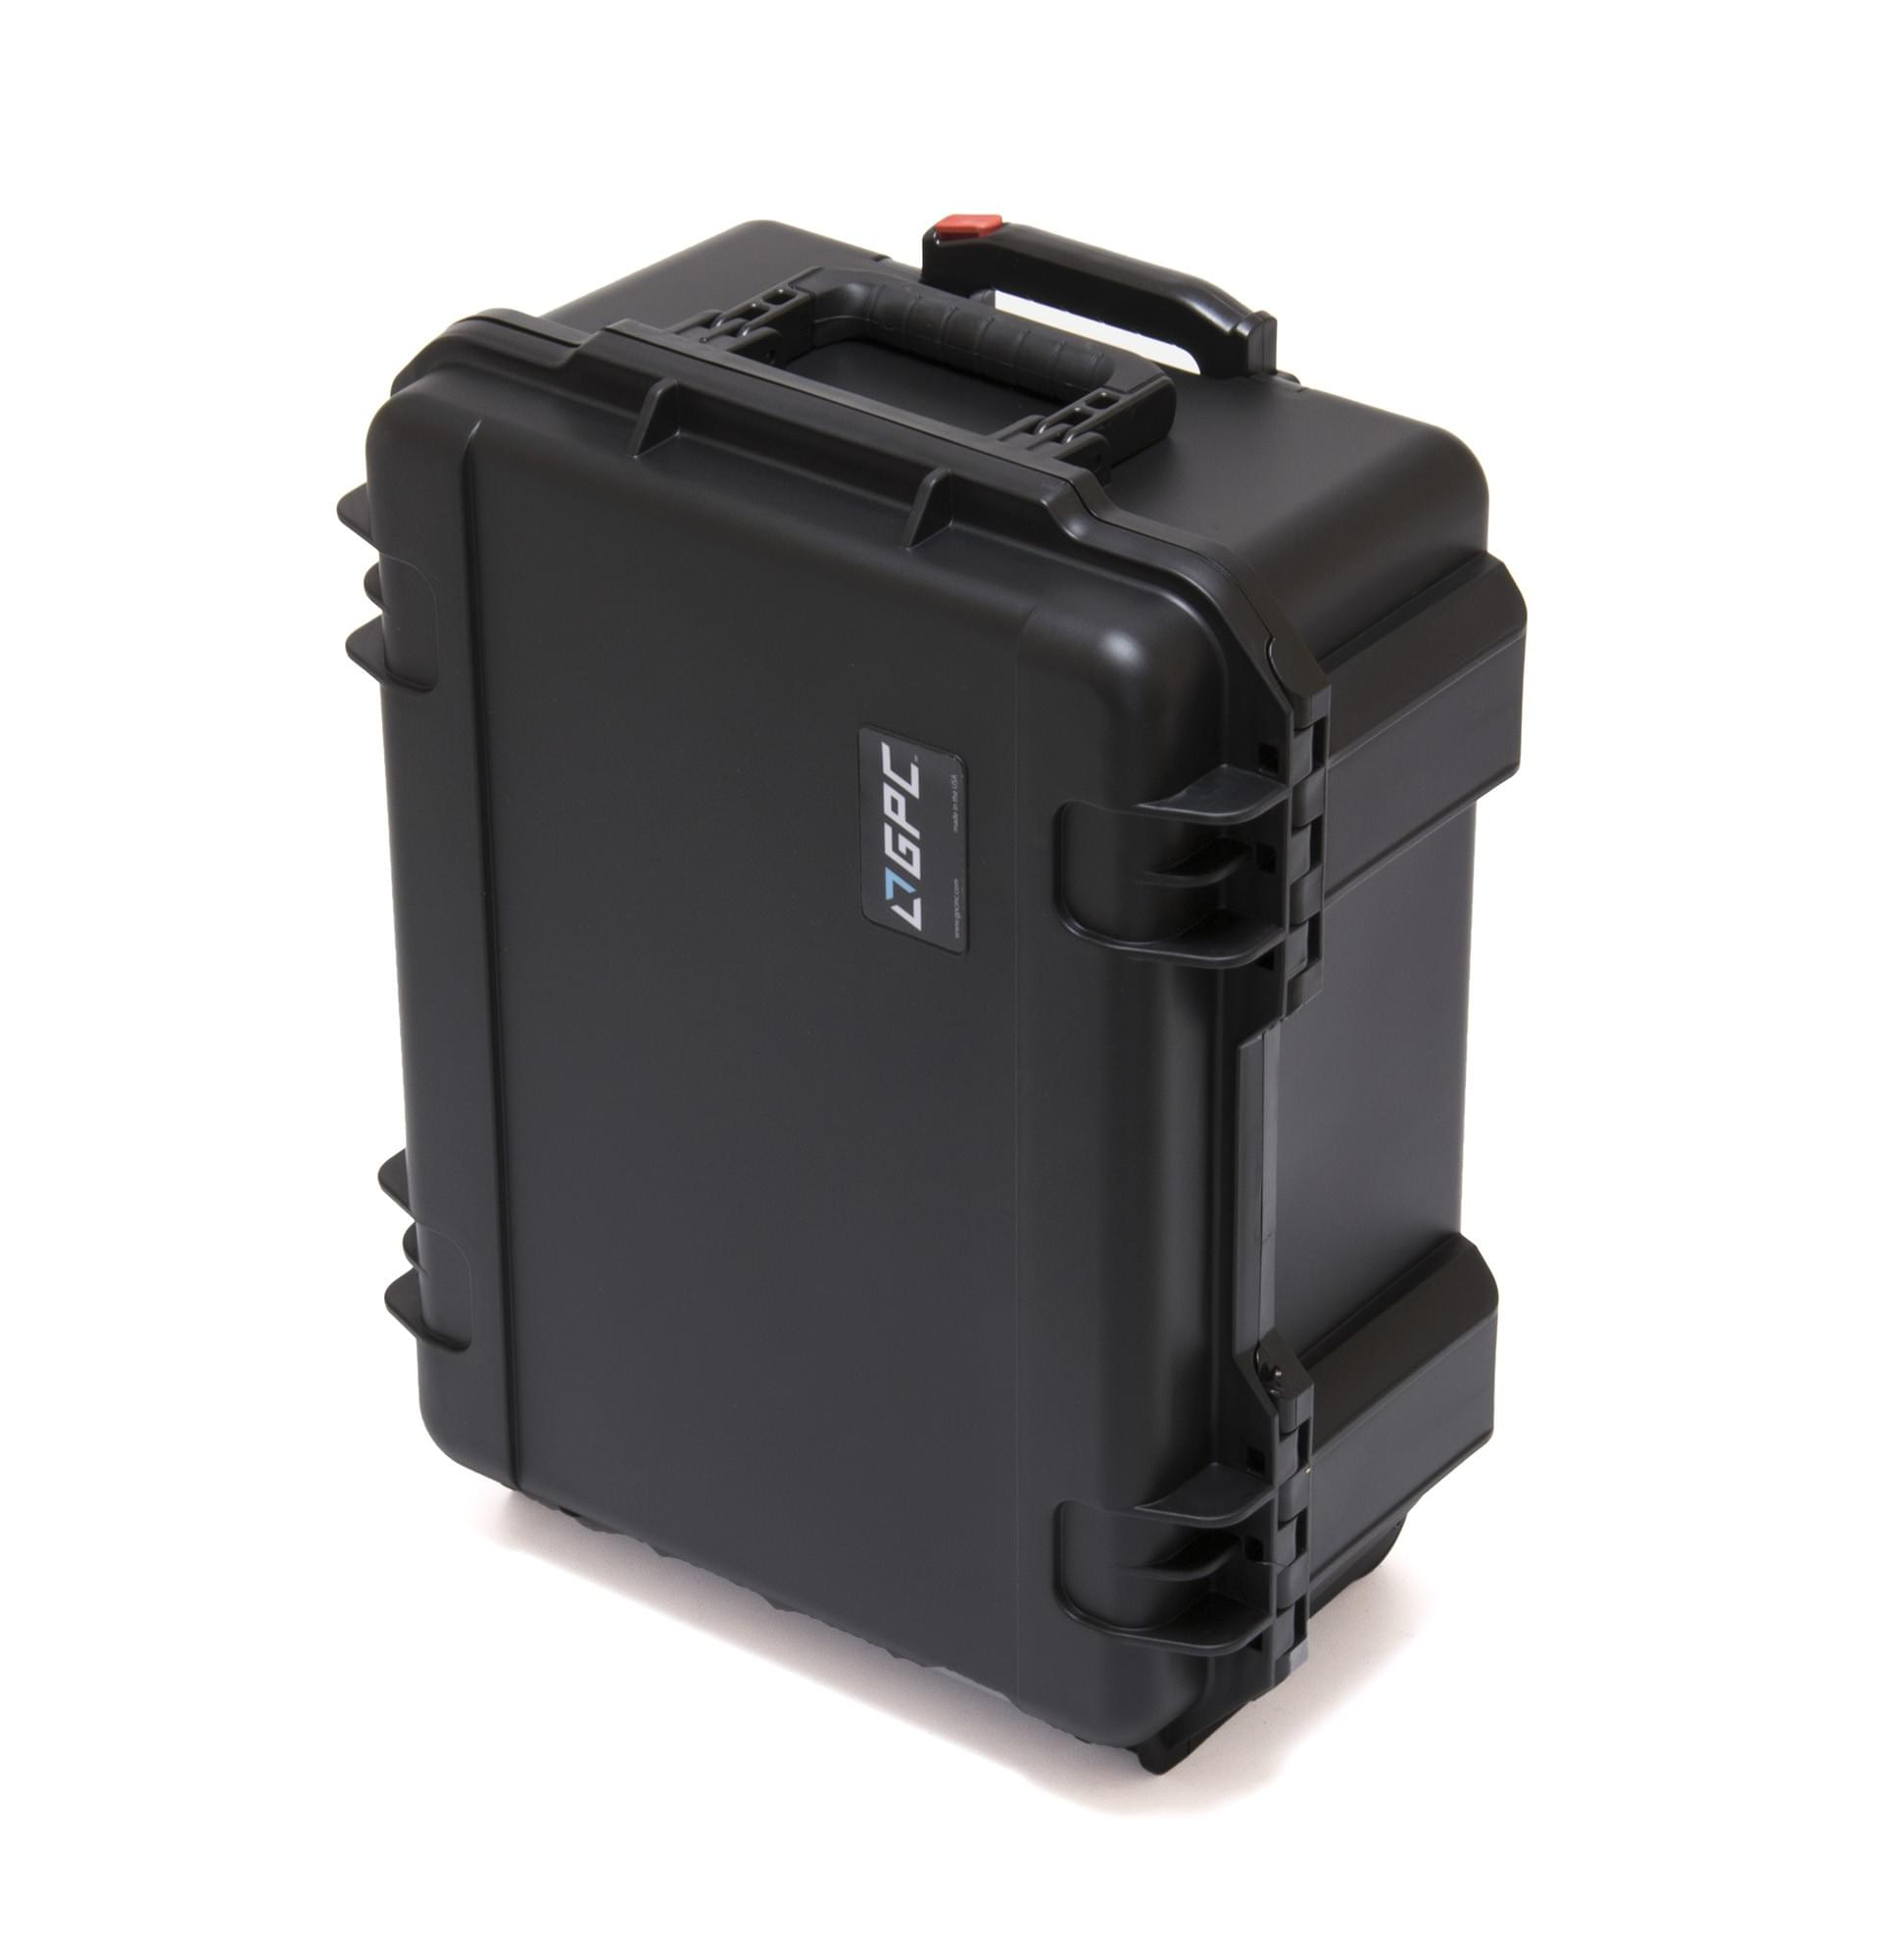 gpc-dji-matrice-600-battery-18-overview